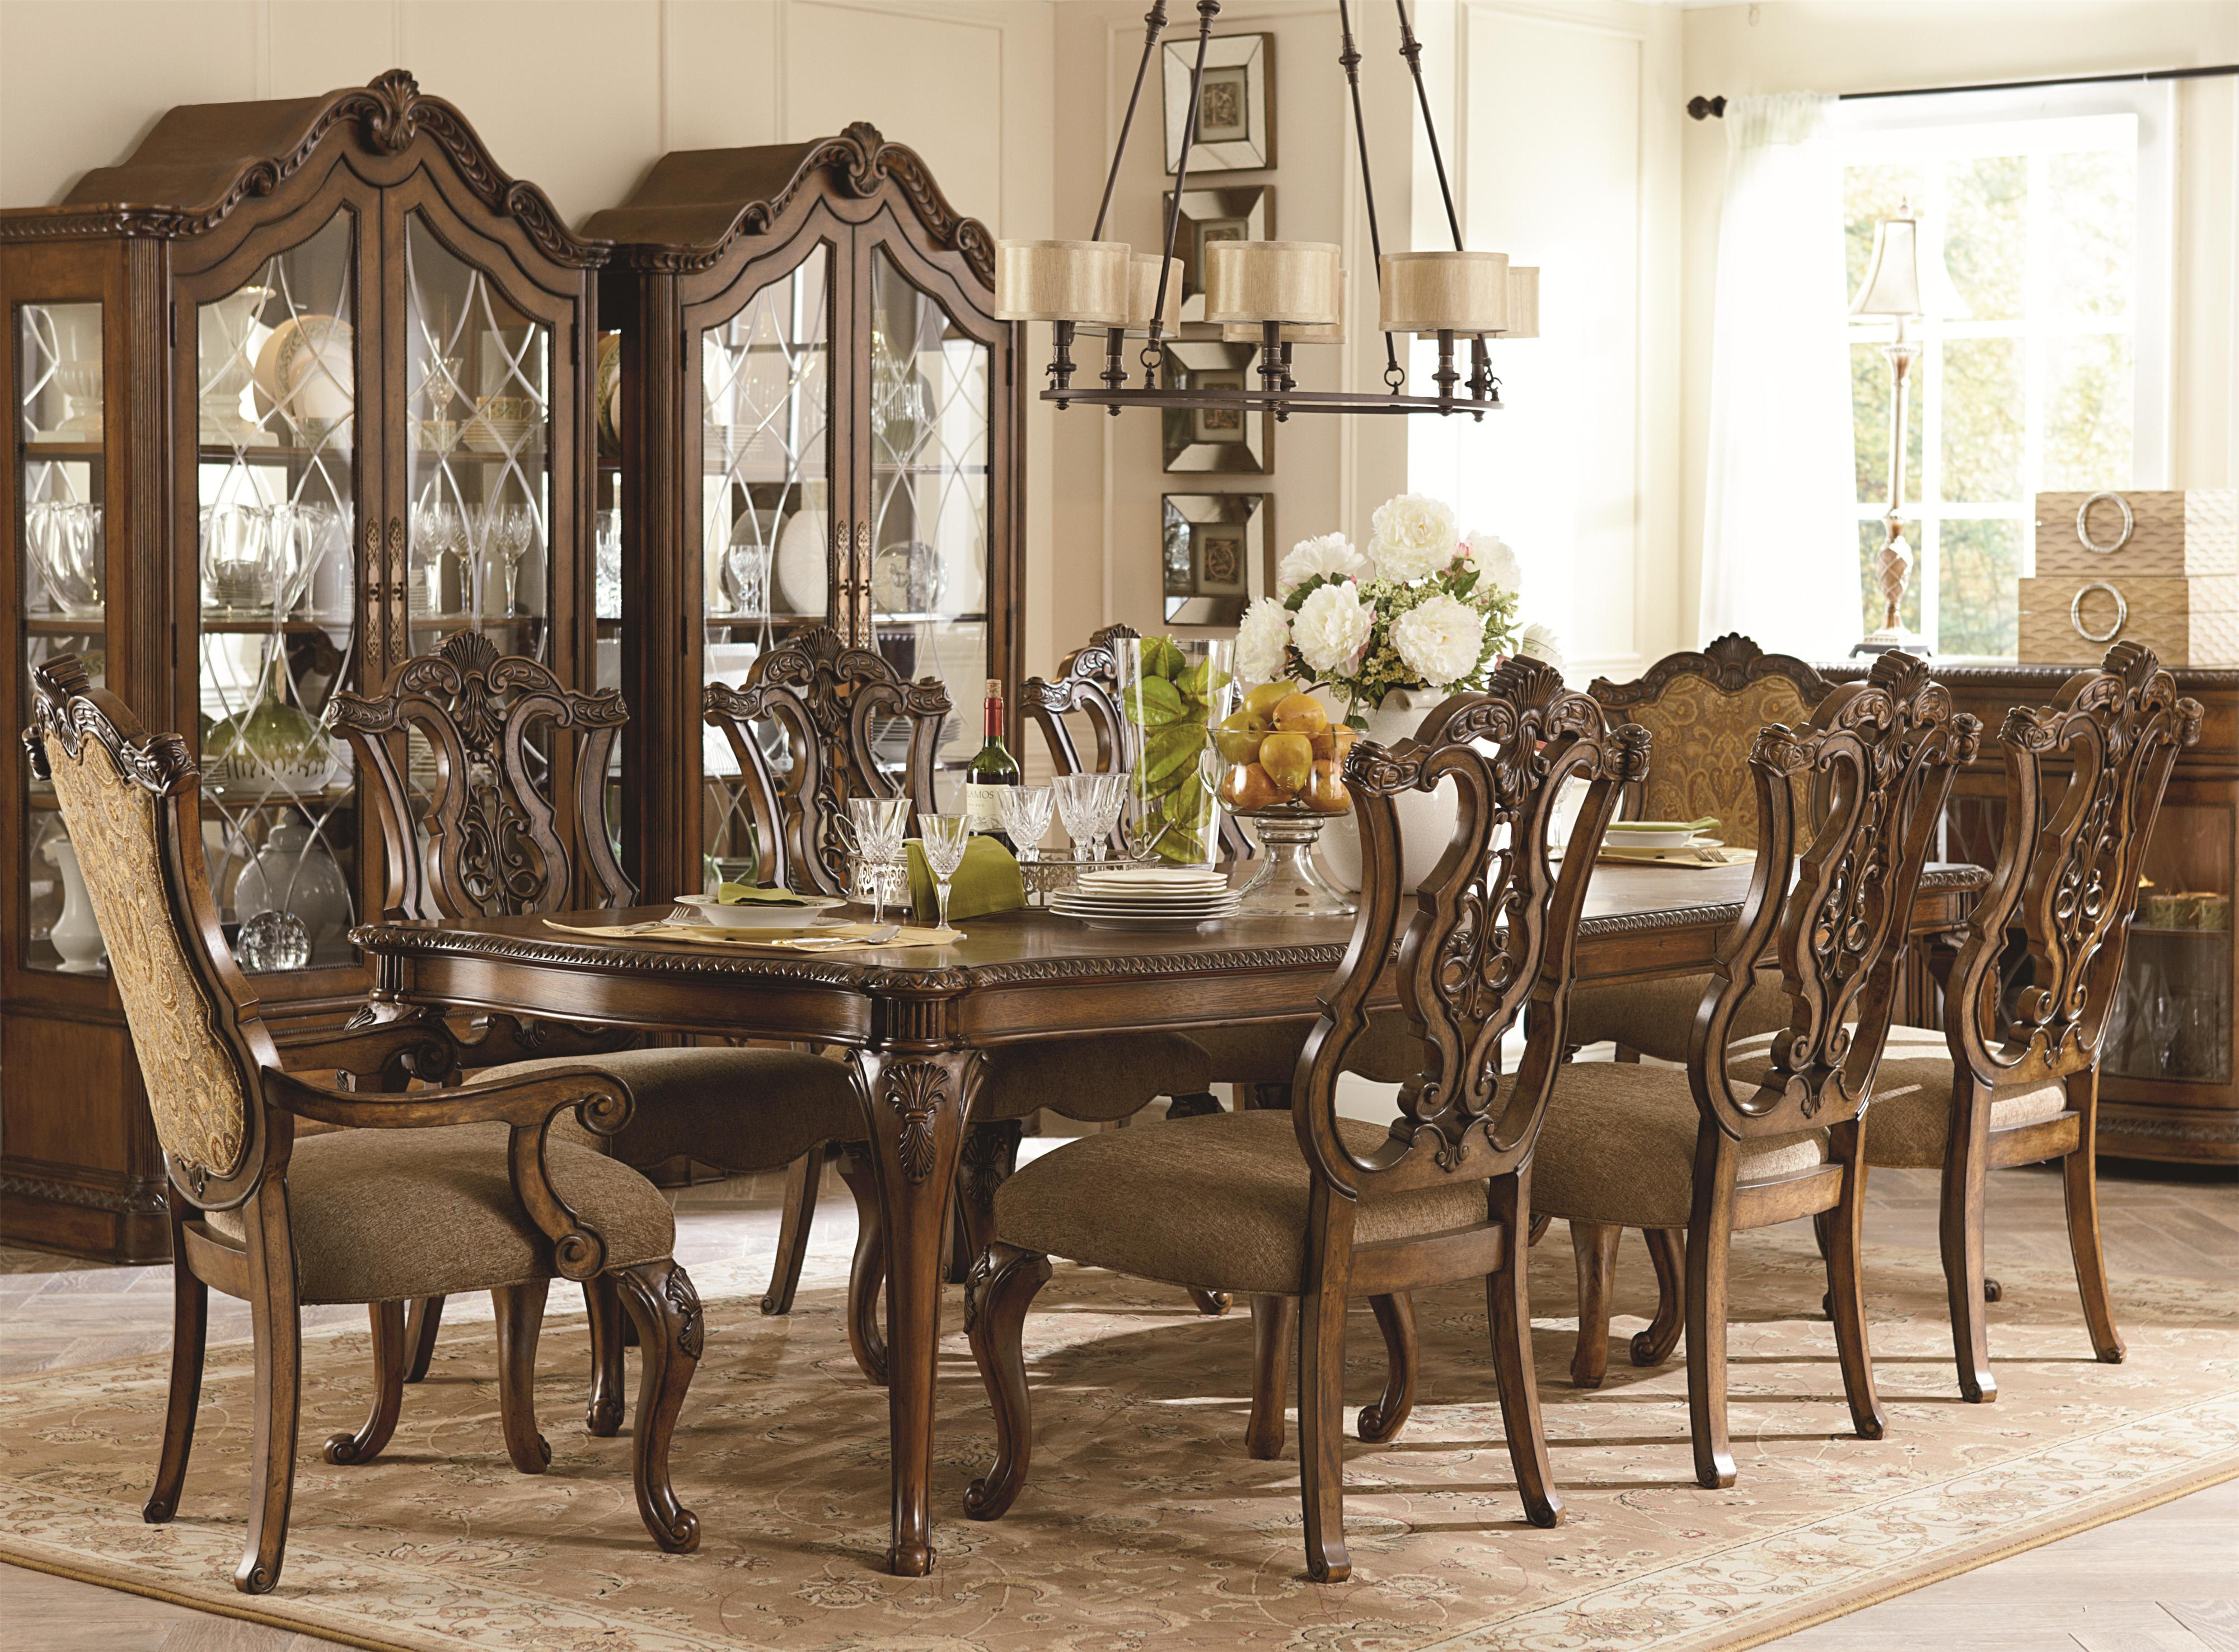 Legacy Classic Pemberleigh 9 Piece Table and Chairs Set - Item Number: 3100-222+6x140 KD+2x341 KD